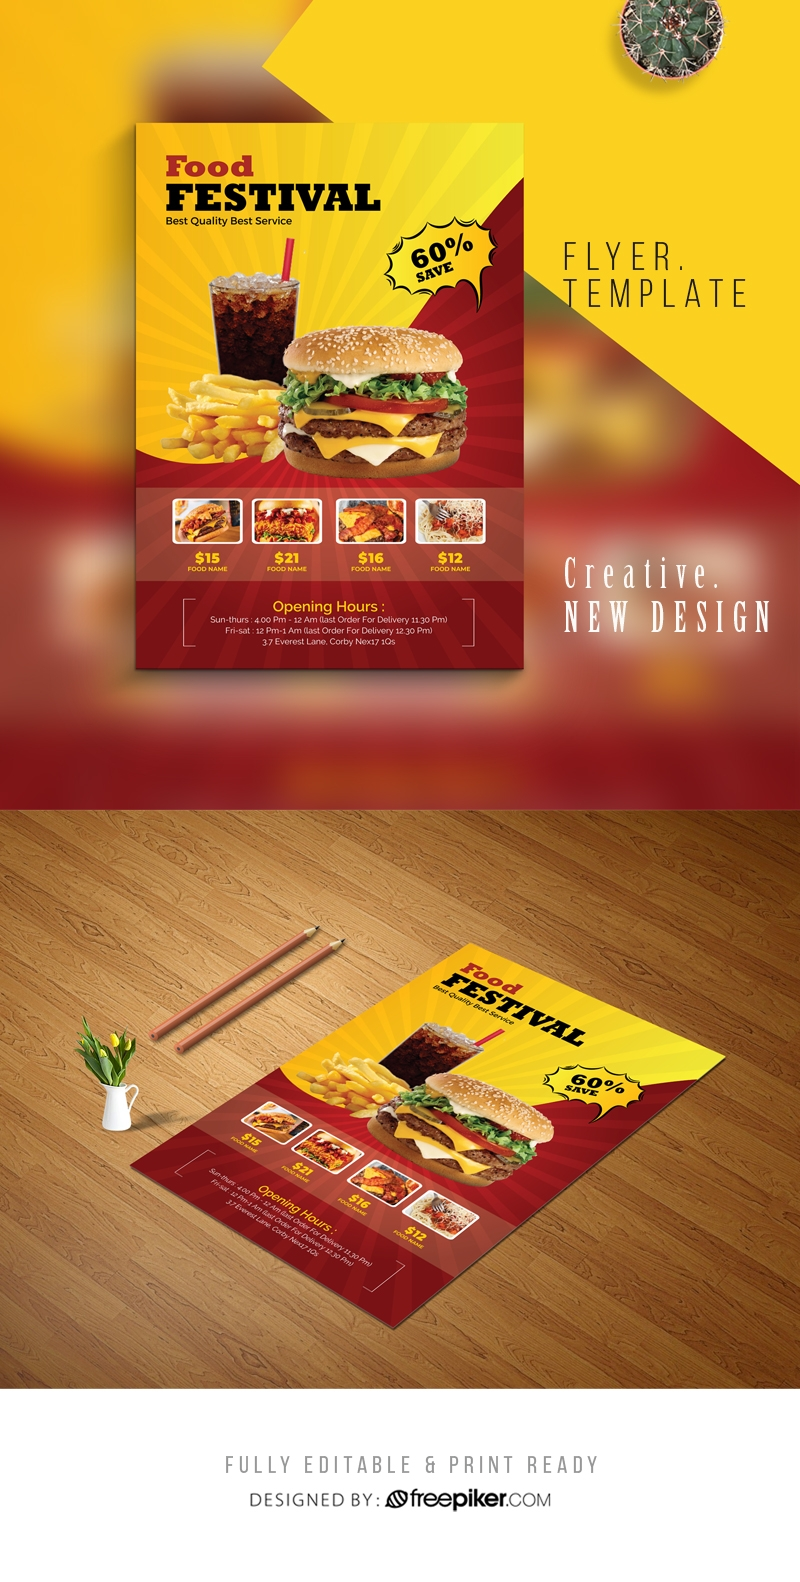 Hamburger Fast Food Flyer With Red And Yellow Accent